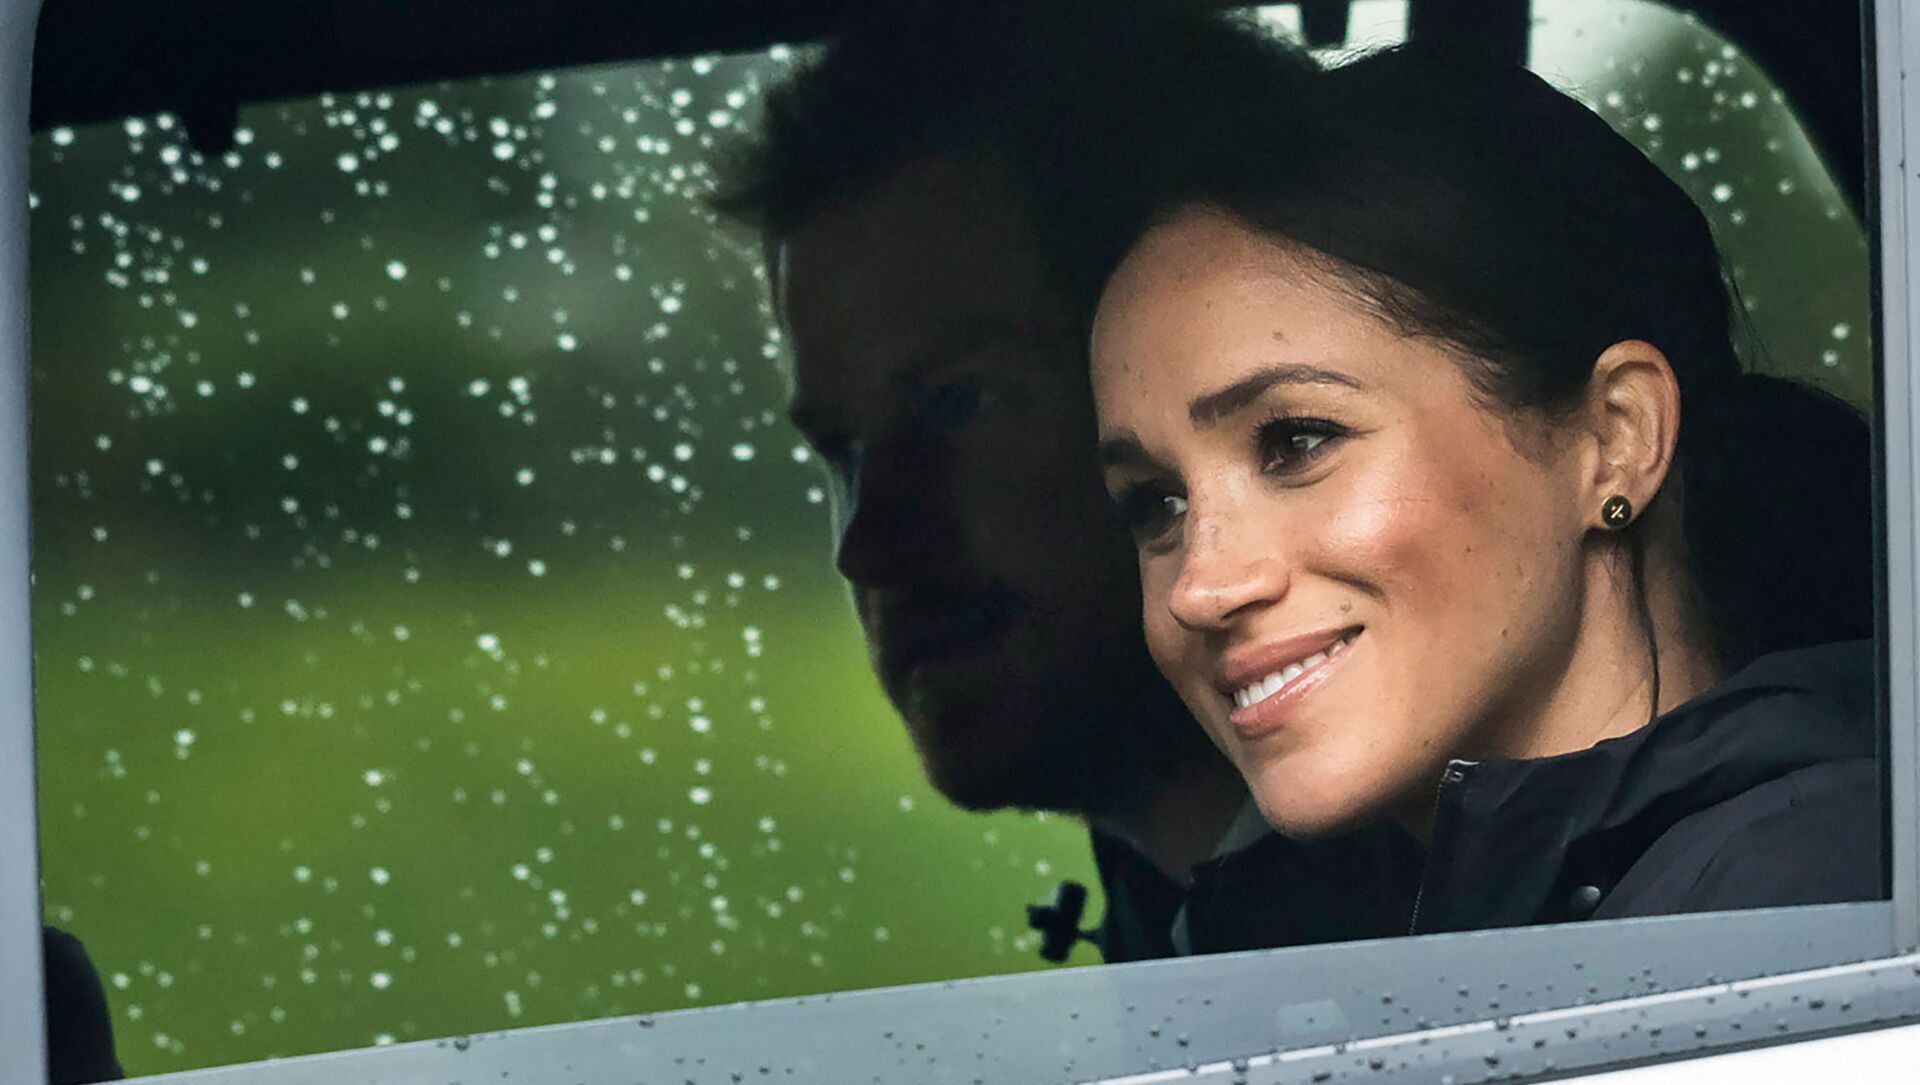 (FILES) In this file photo Britain's Prince Harry and his wife Meghan, Duchess of Sussex arrive for the unveiling of a plaque dedicating 20 hectares of native bush to the Queen's Commonwealth Canopy project at The North Shore Riding Club in Auckland on October 30, 2018 - Sputnik International, 1920, 26.05.2021